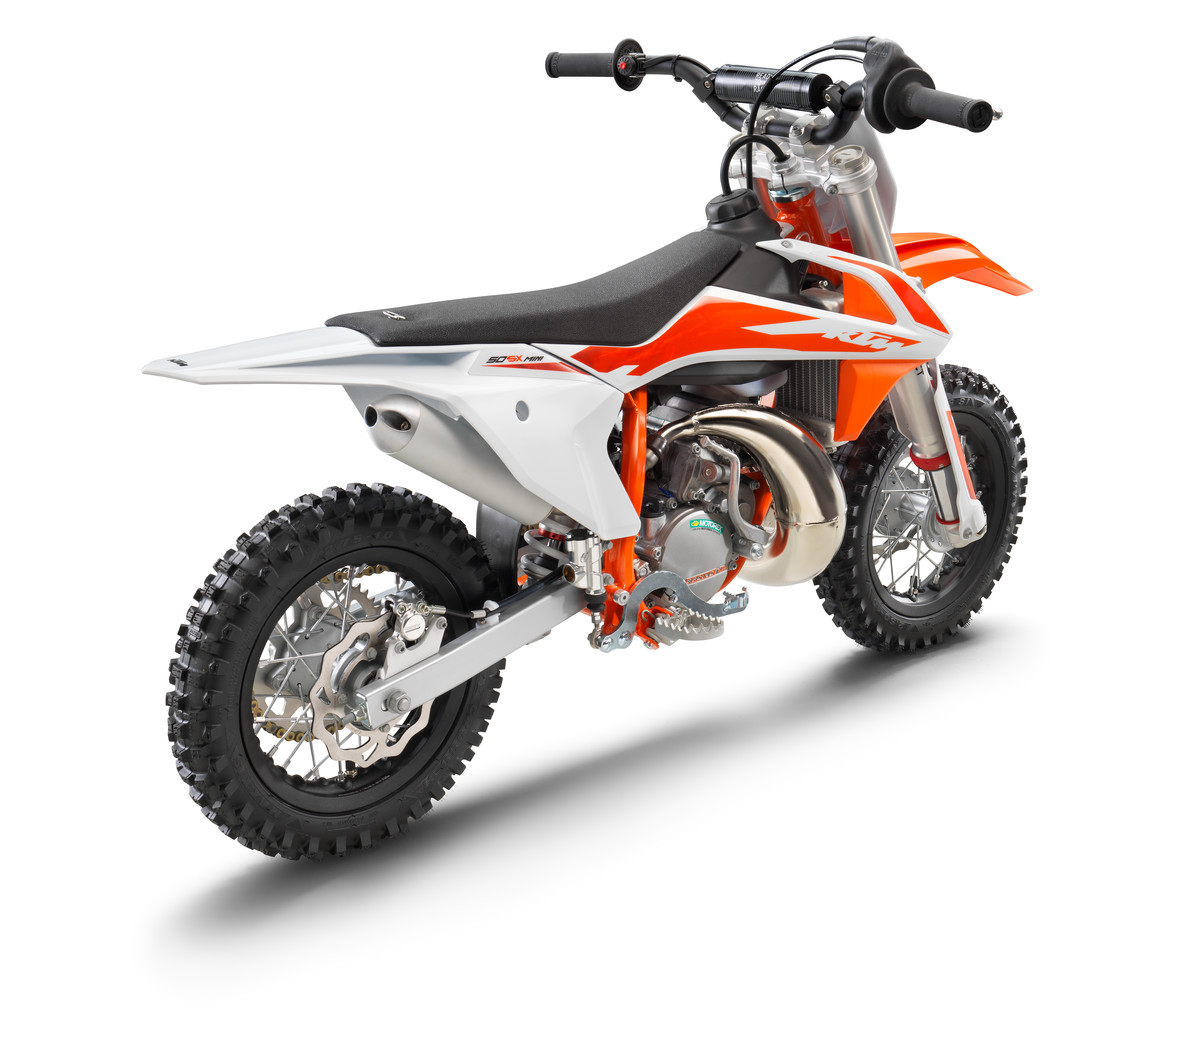 267877_KTM 50 SX MINI ri_rear 2020.jpg